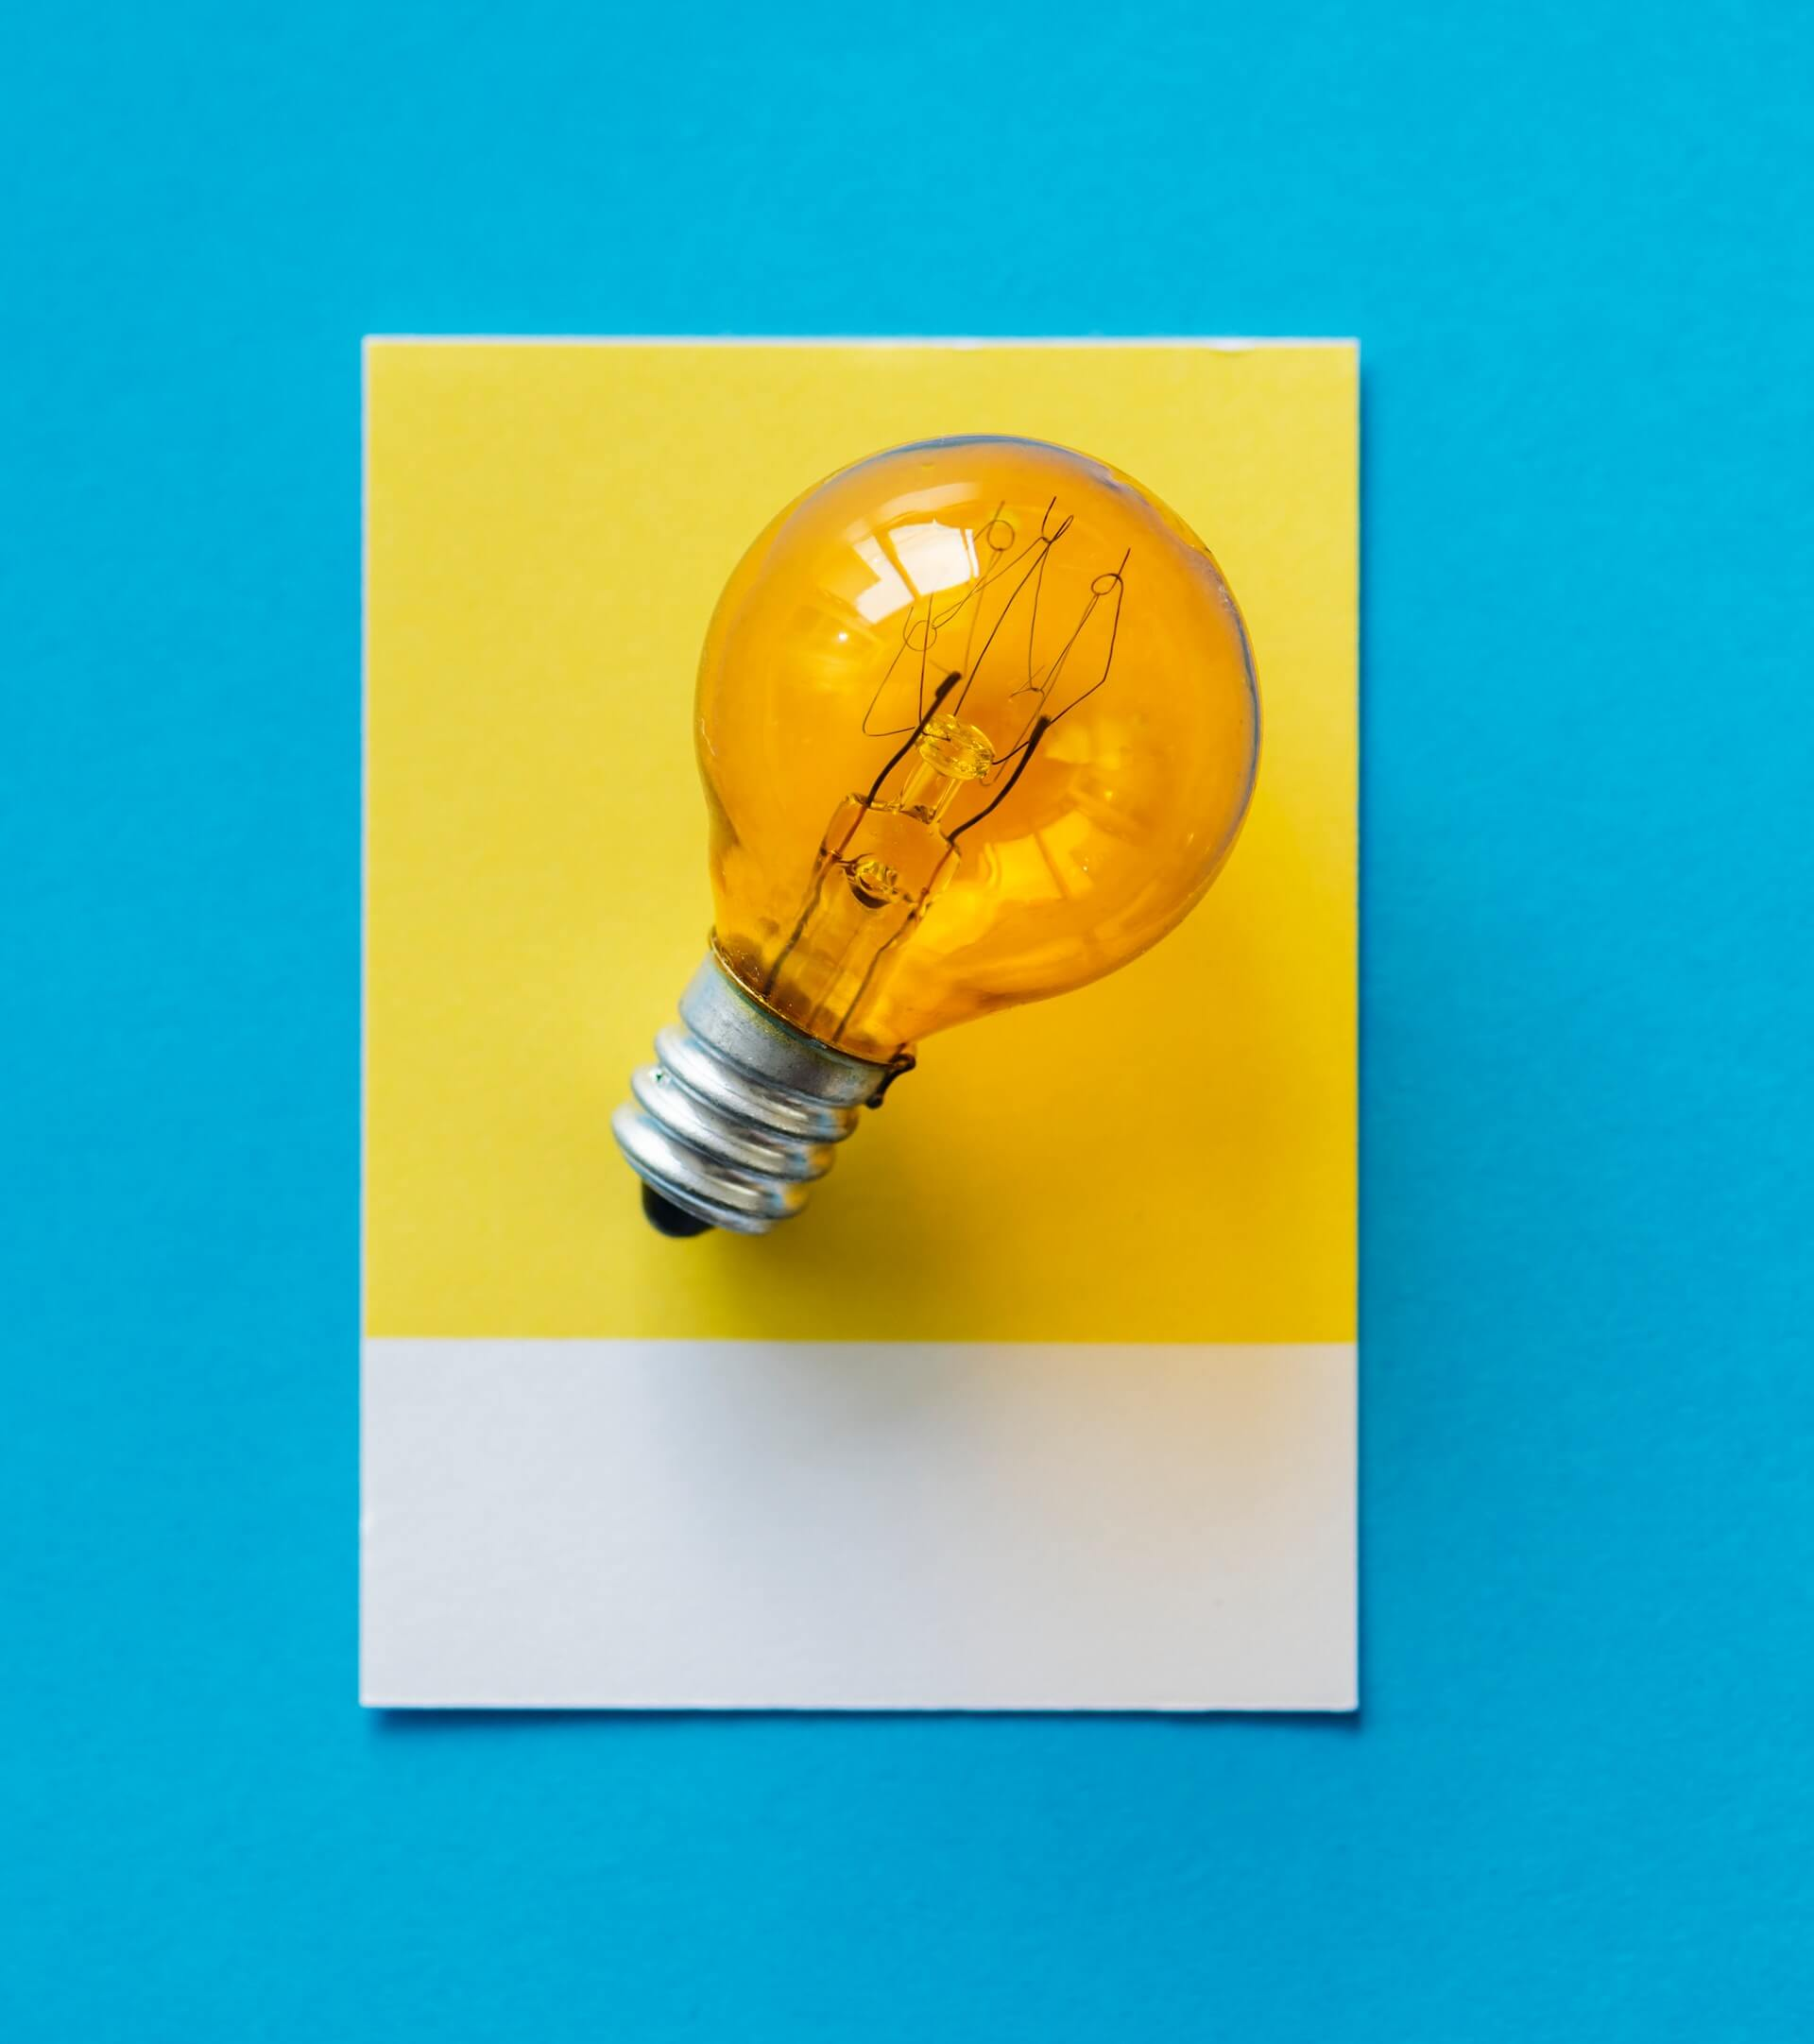 Bulb on a blue background